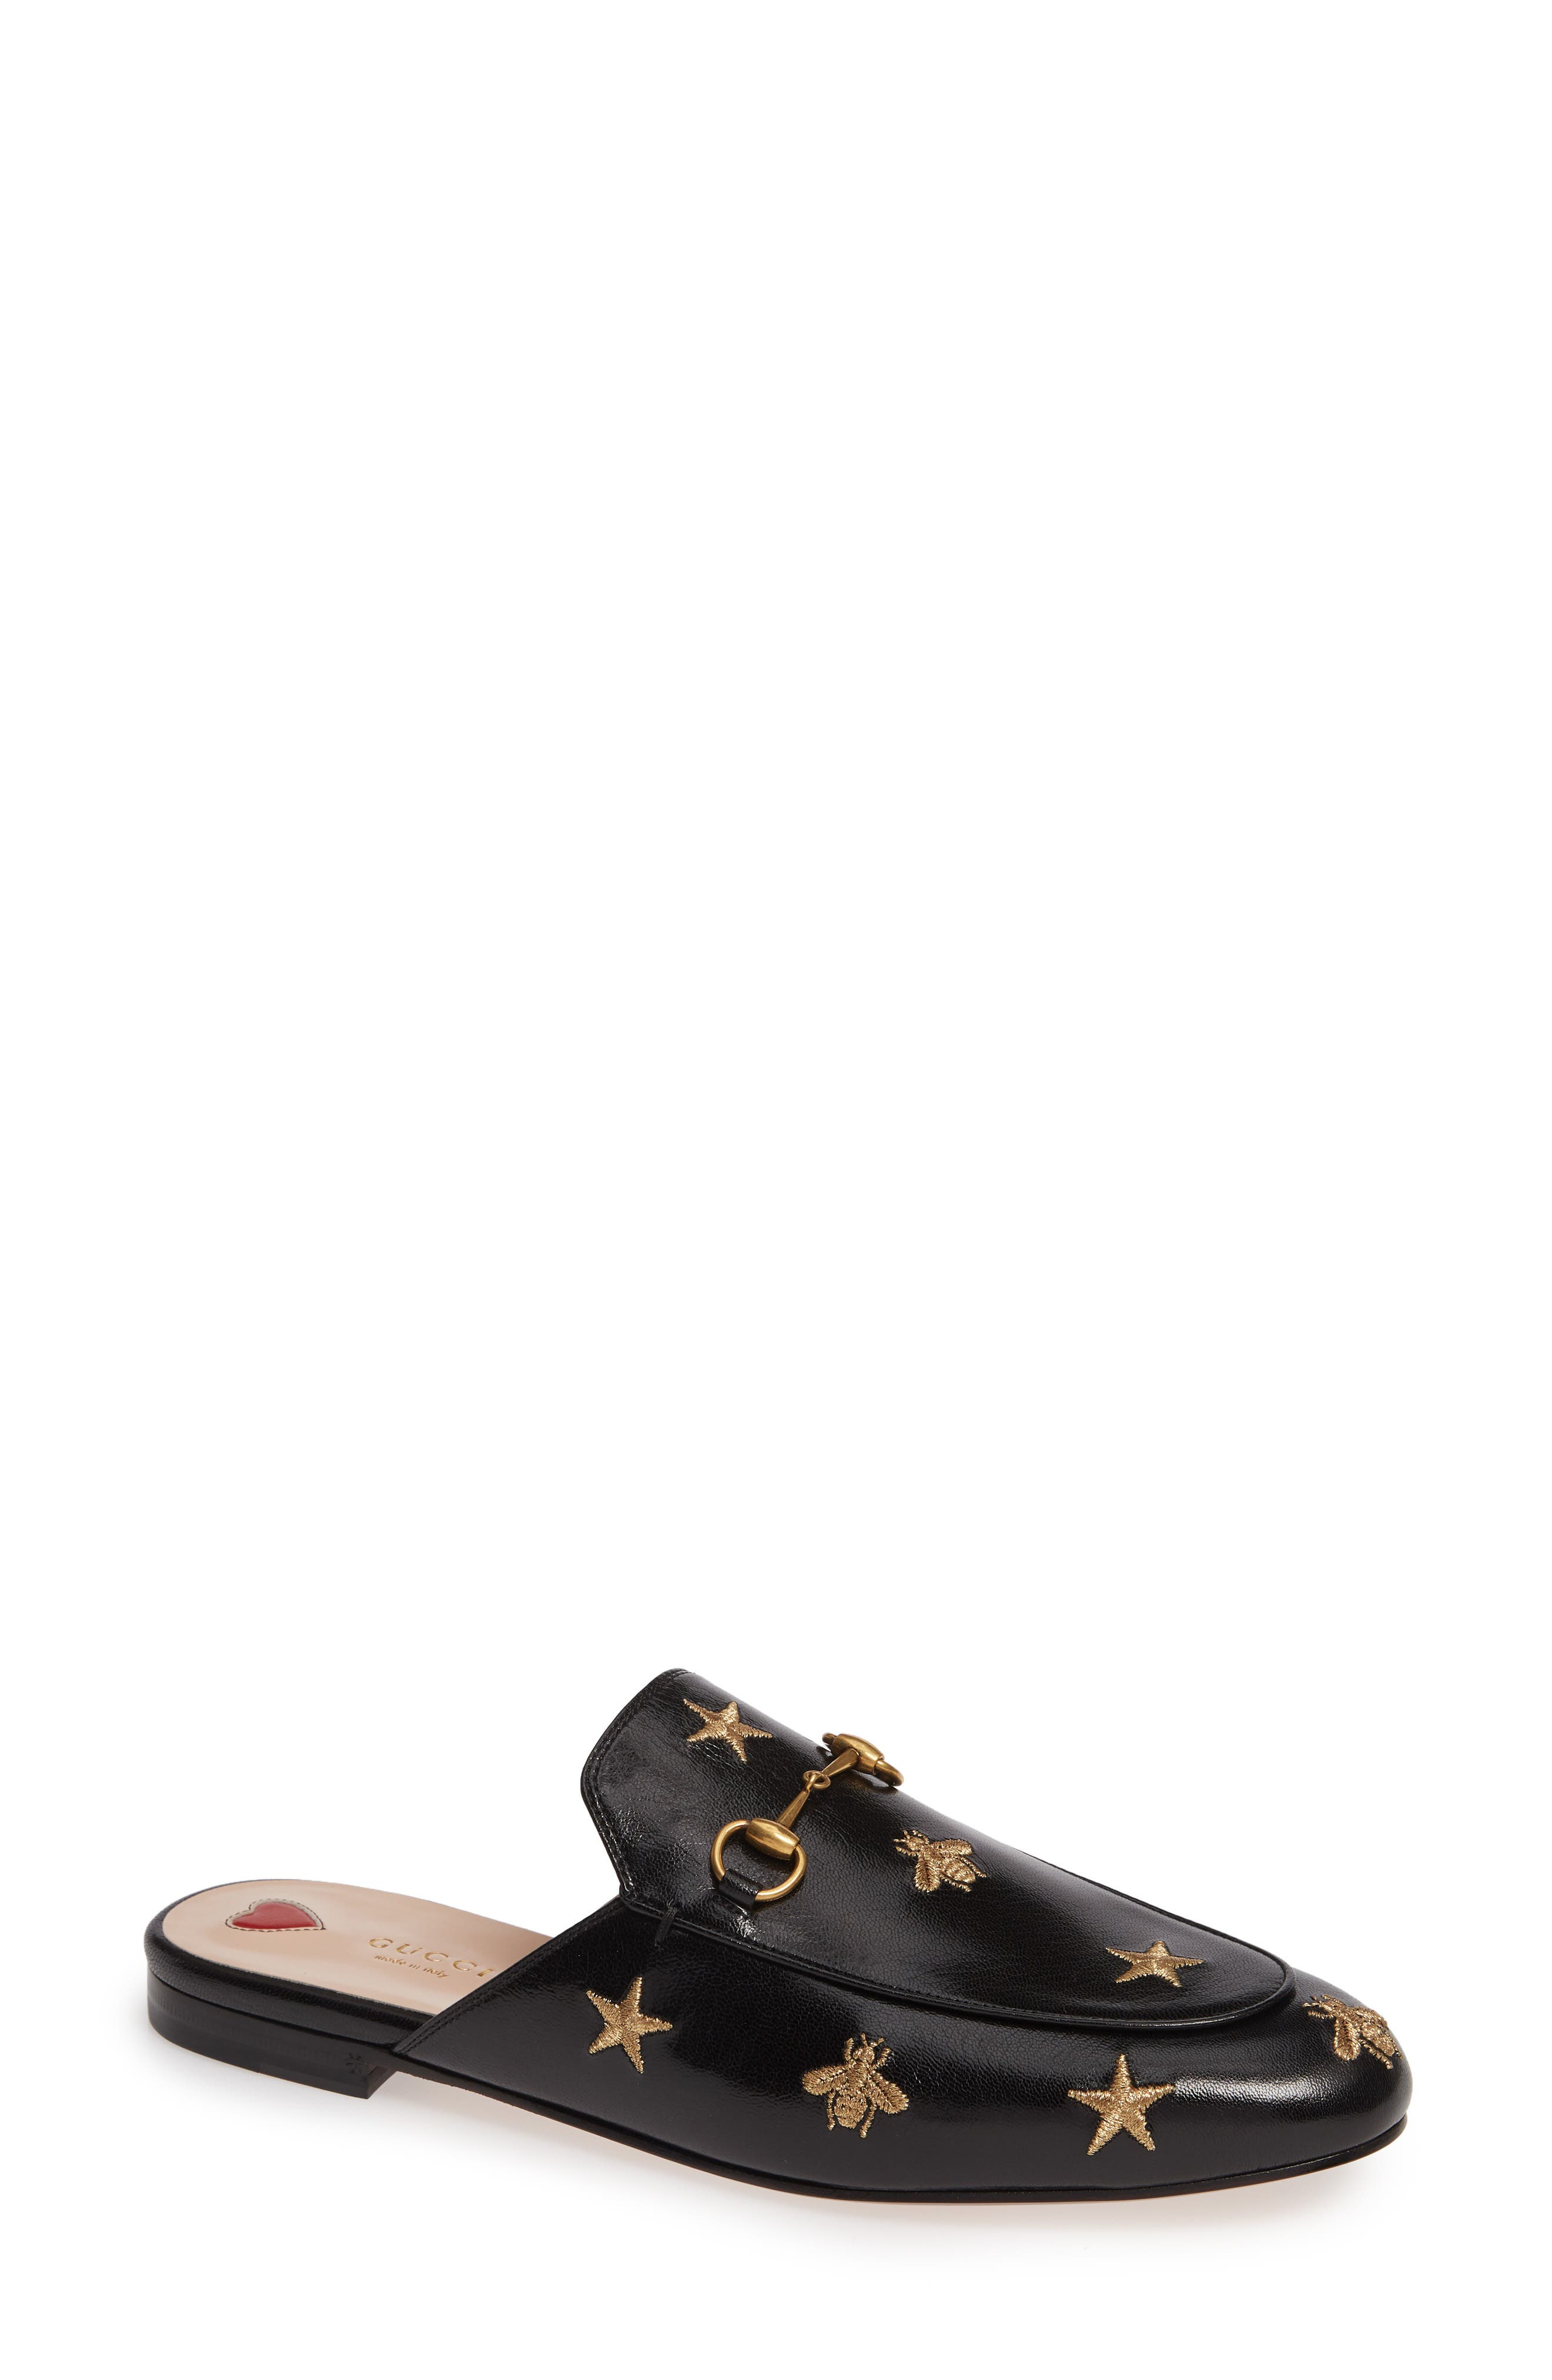 GUCCI, Princetown Mule, Main thumbnail 1, color, BLACK LEATHER